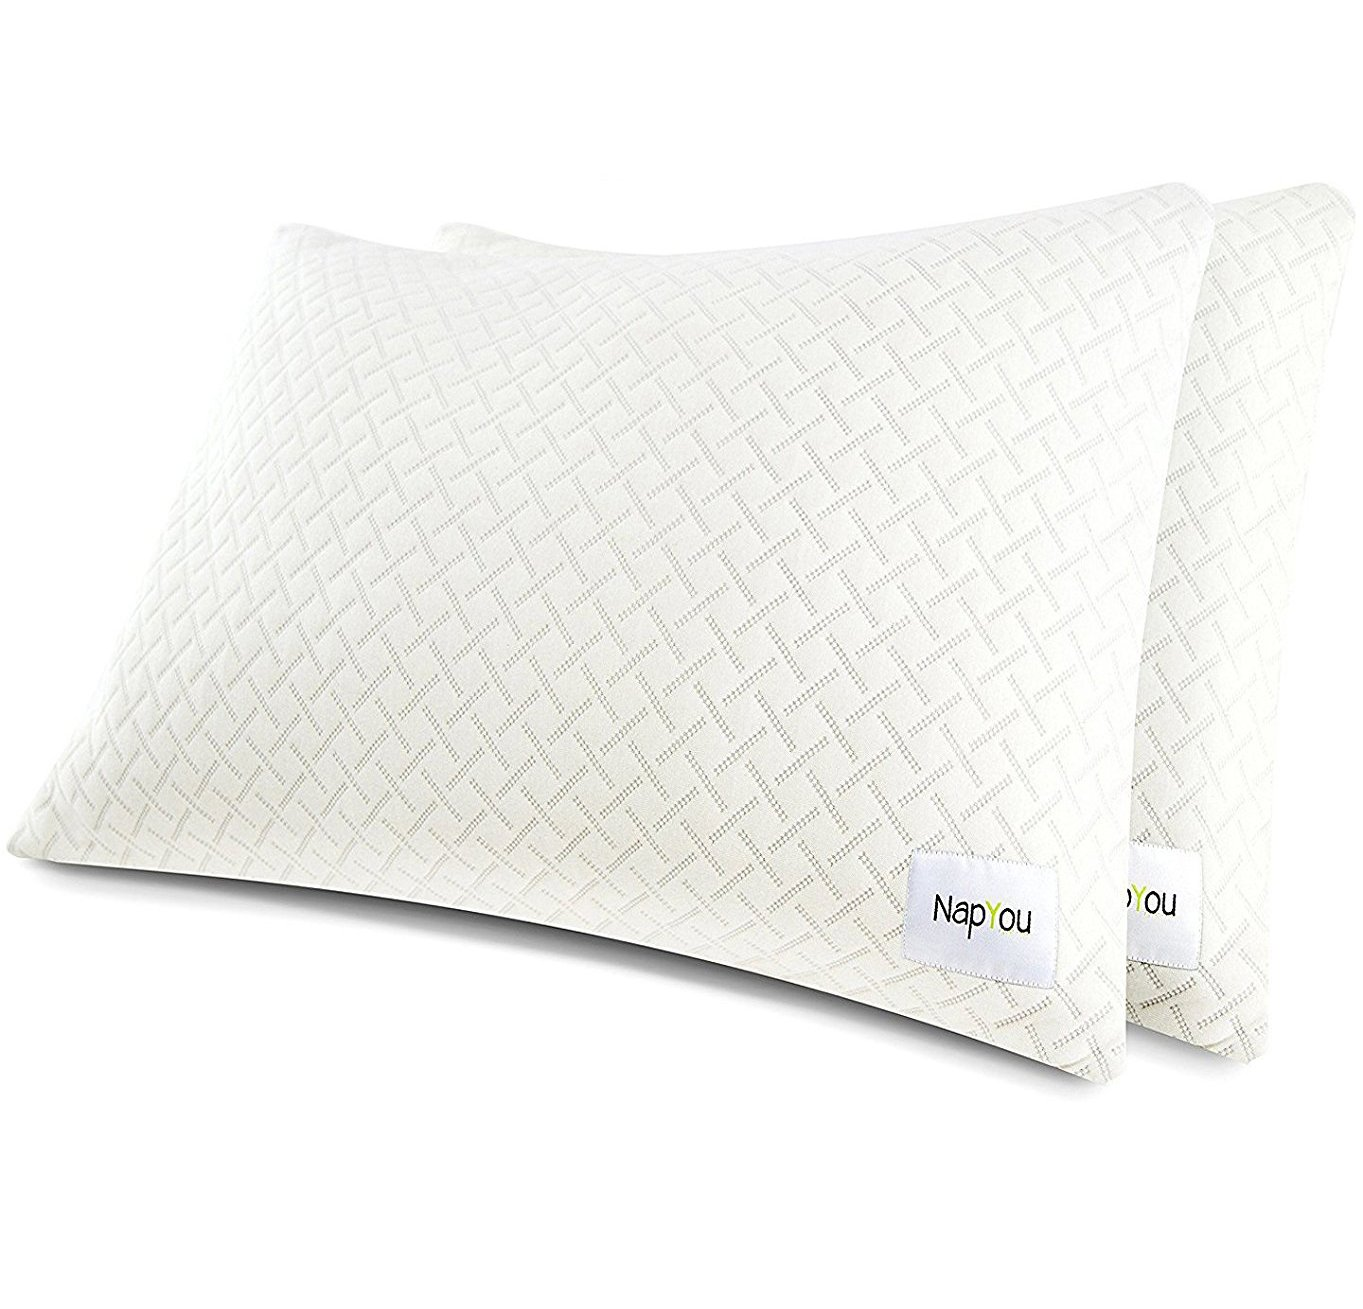 NapYou Official Amazon Exclusive (2 Pack) Shredded Certipur Memory Foam Pillow with Unique and Luxury Pillow Cover Design for Ultimate Breathability and Density Made with Organic Cotton (Standard)